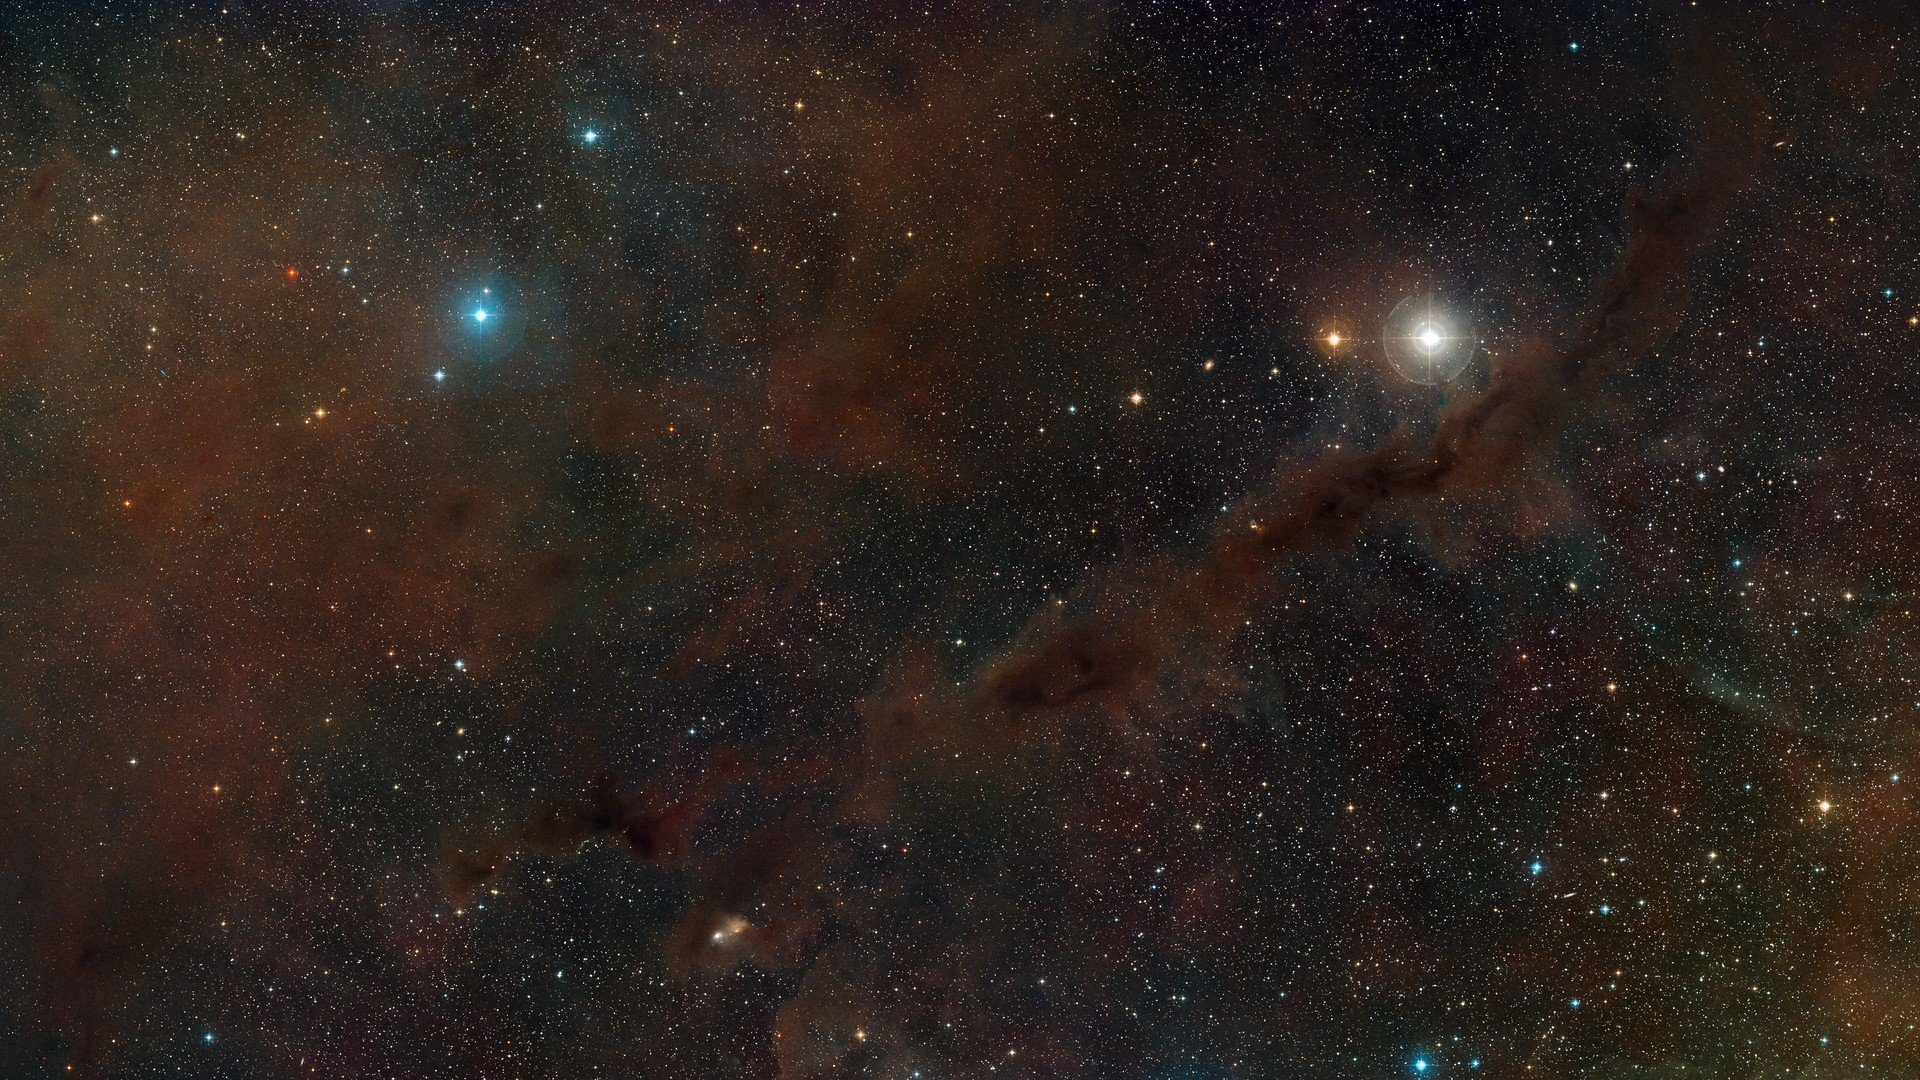 Outer space stars Constellation galaxy wallpaper 1920x1080 290023 1920x1080